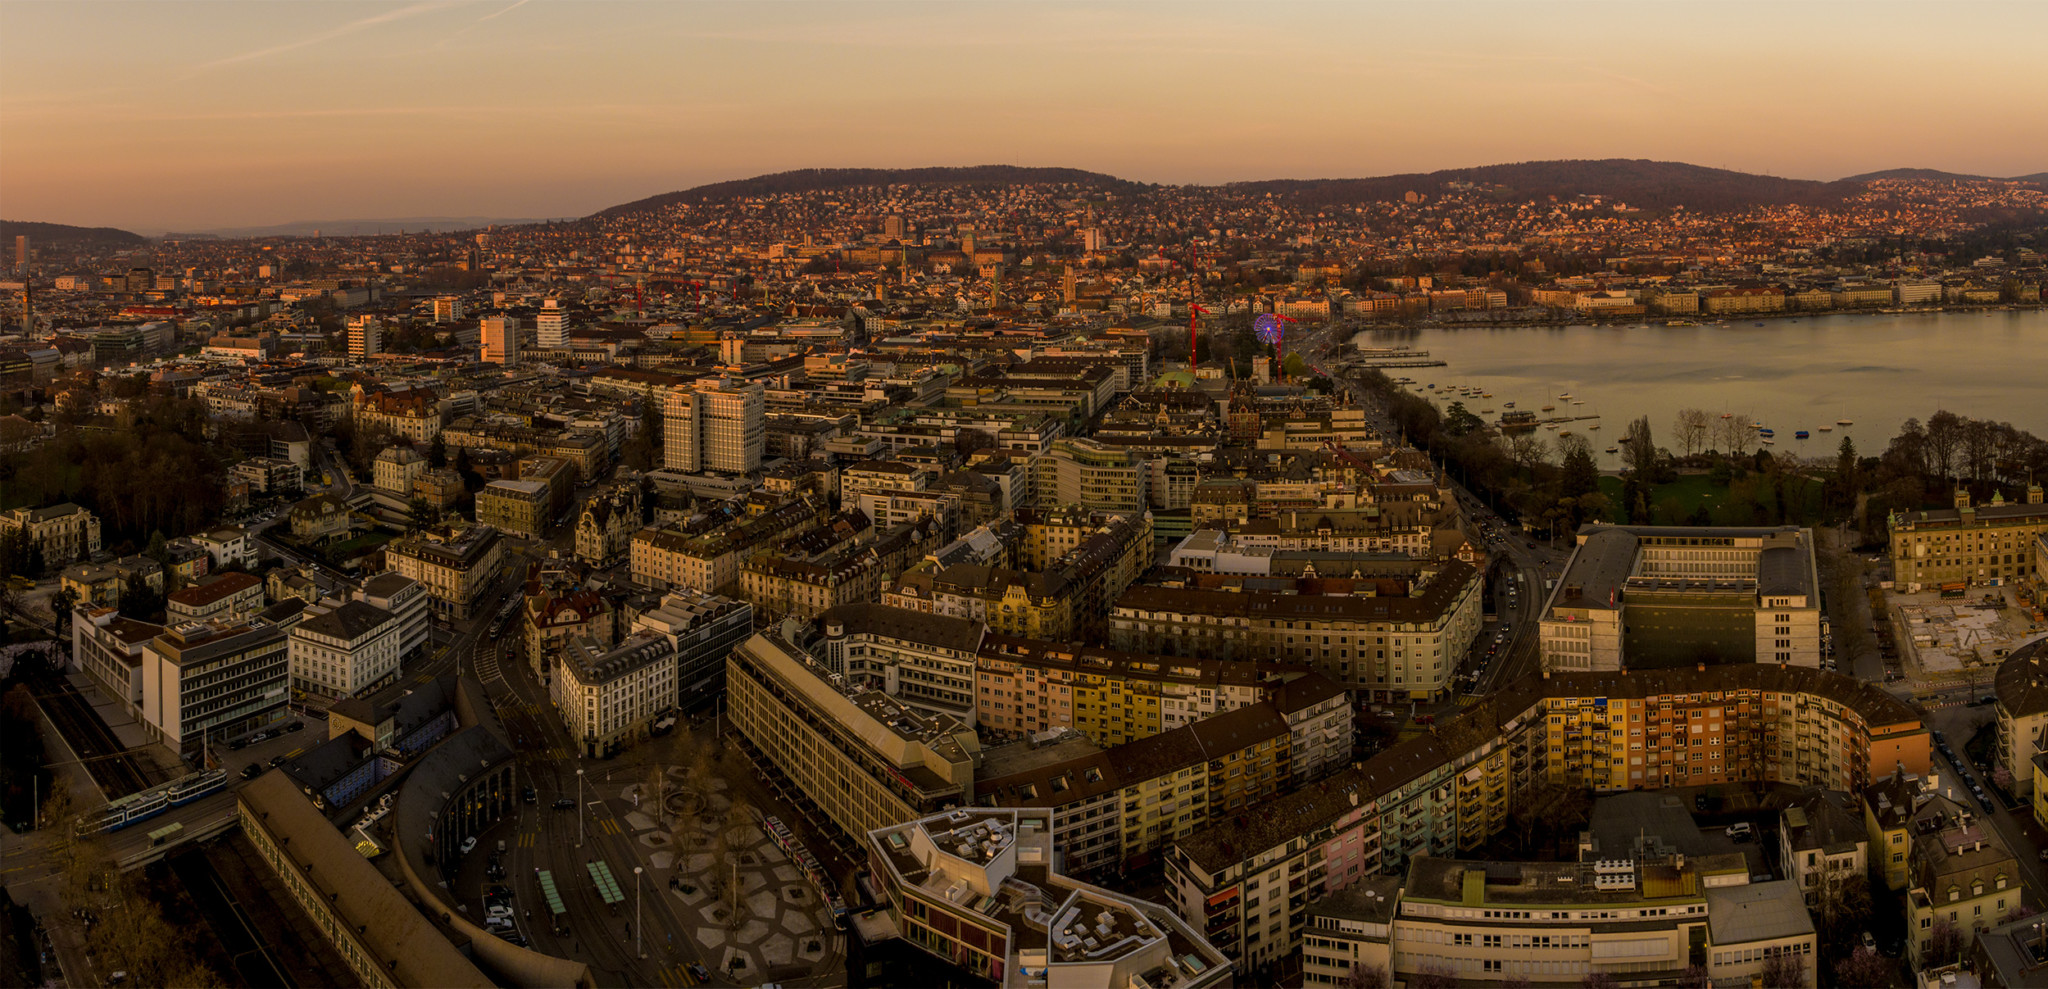 Sunset Over The City Of Zurich